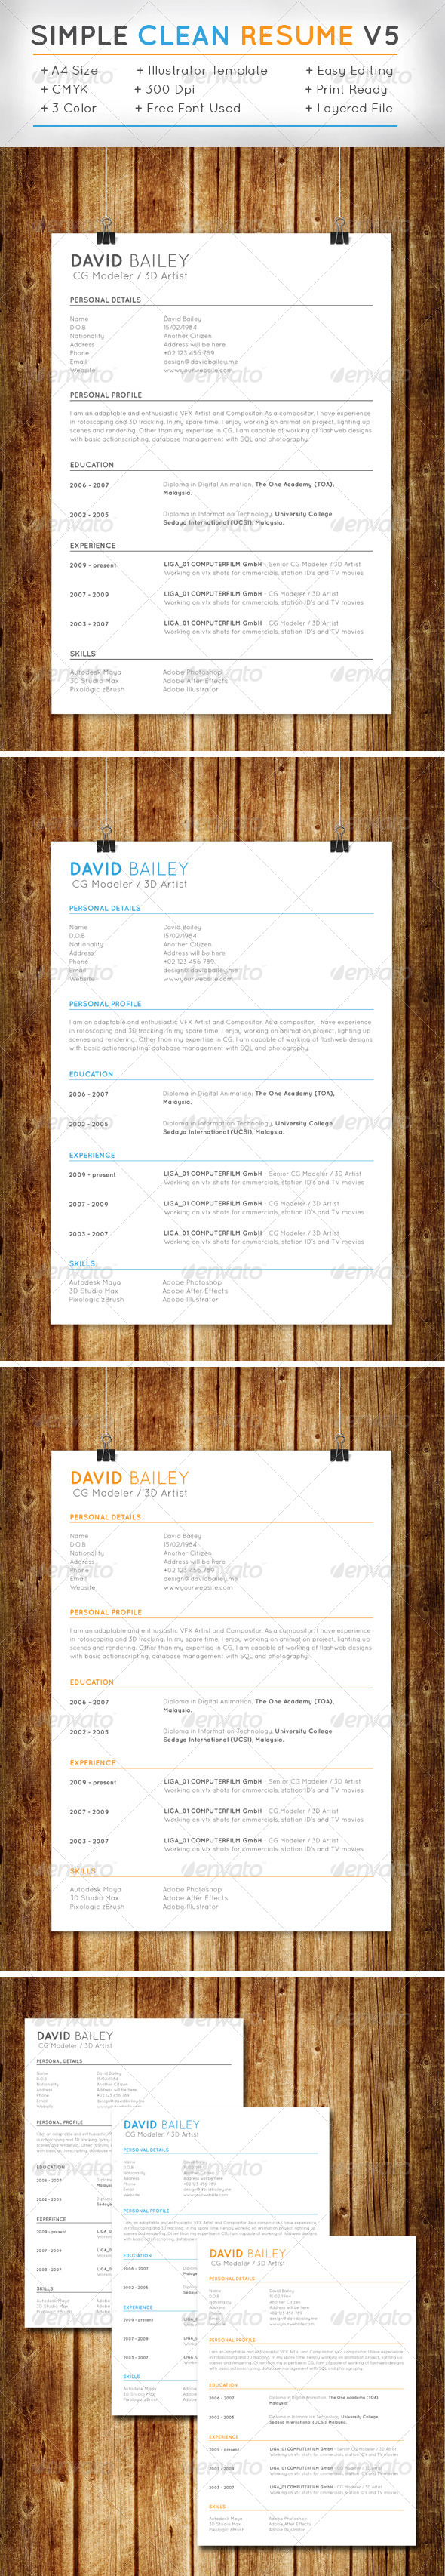 GraphicRiver Simple Clean Resume v5 7648947